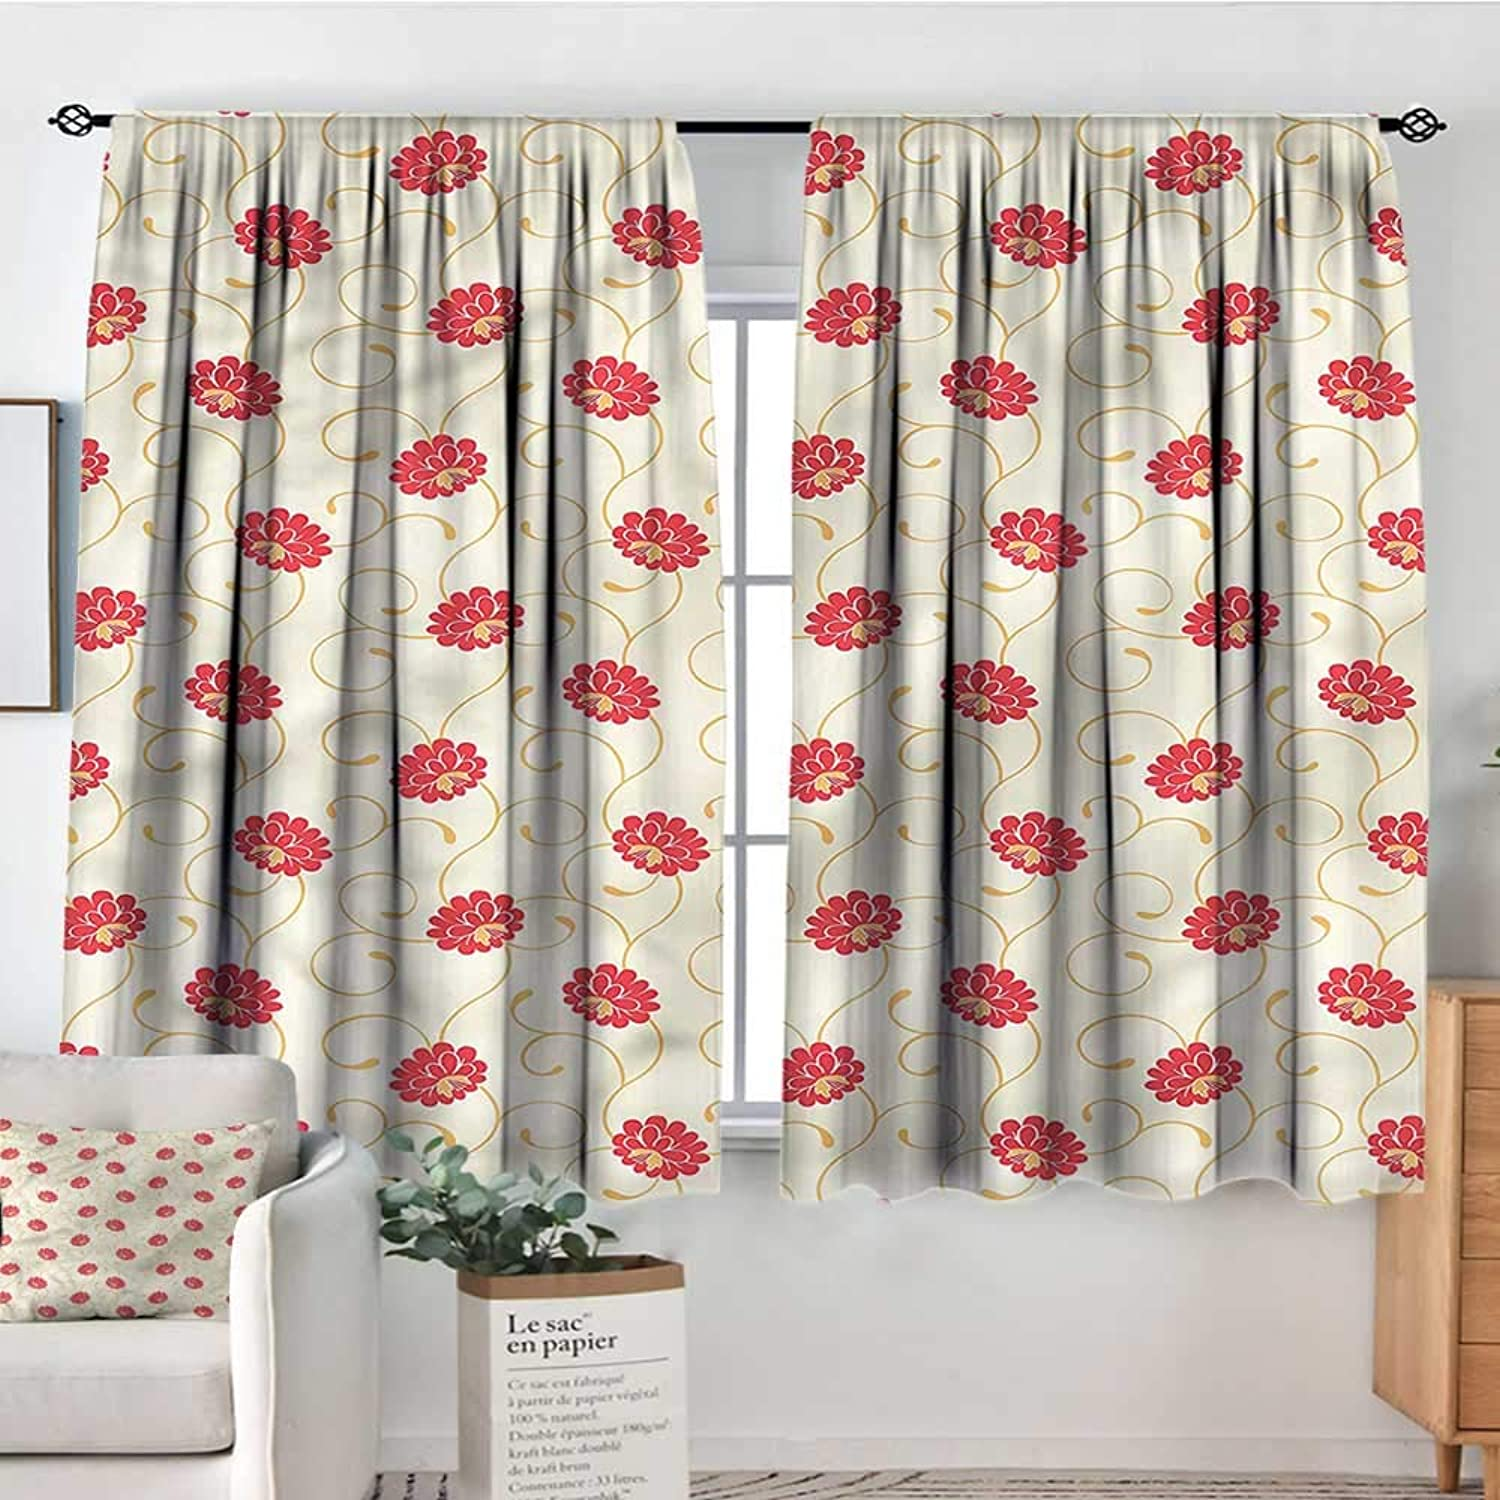 Familytaste Yellow and Red,Boy's Iving Room Curtain Blossoming Flowers 42 X54  Indo Treatments for Short Indo